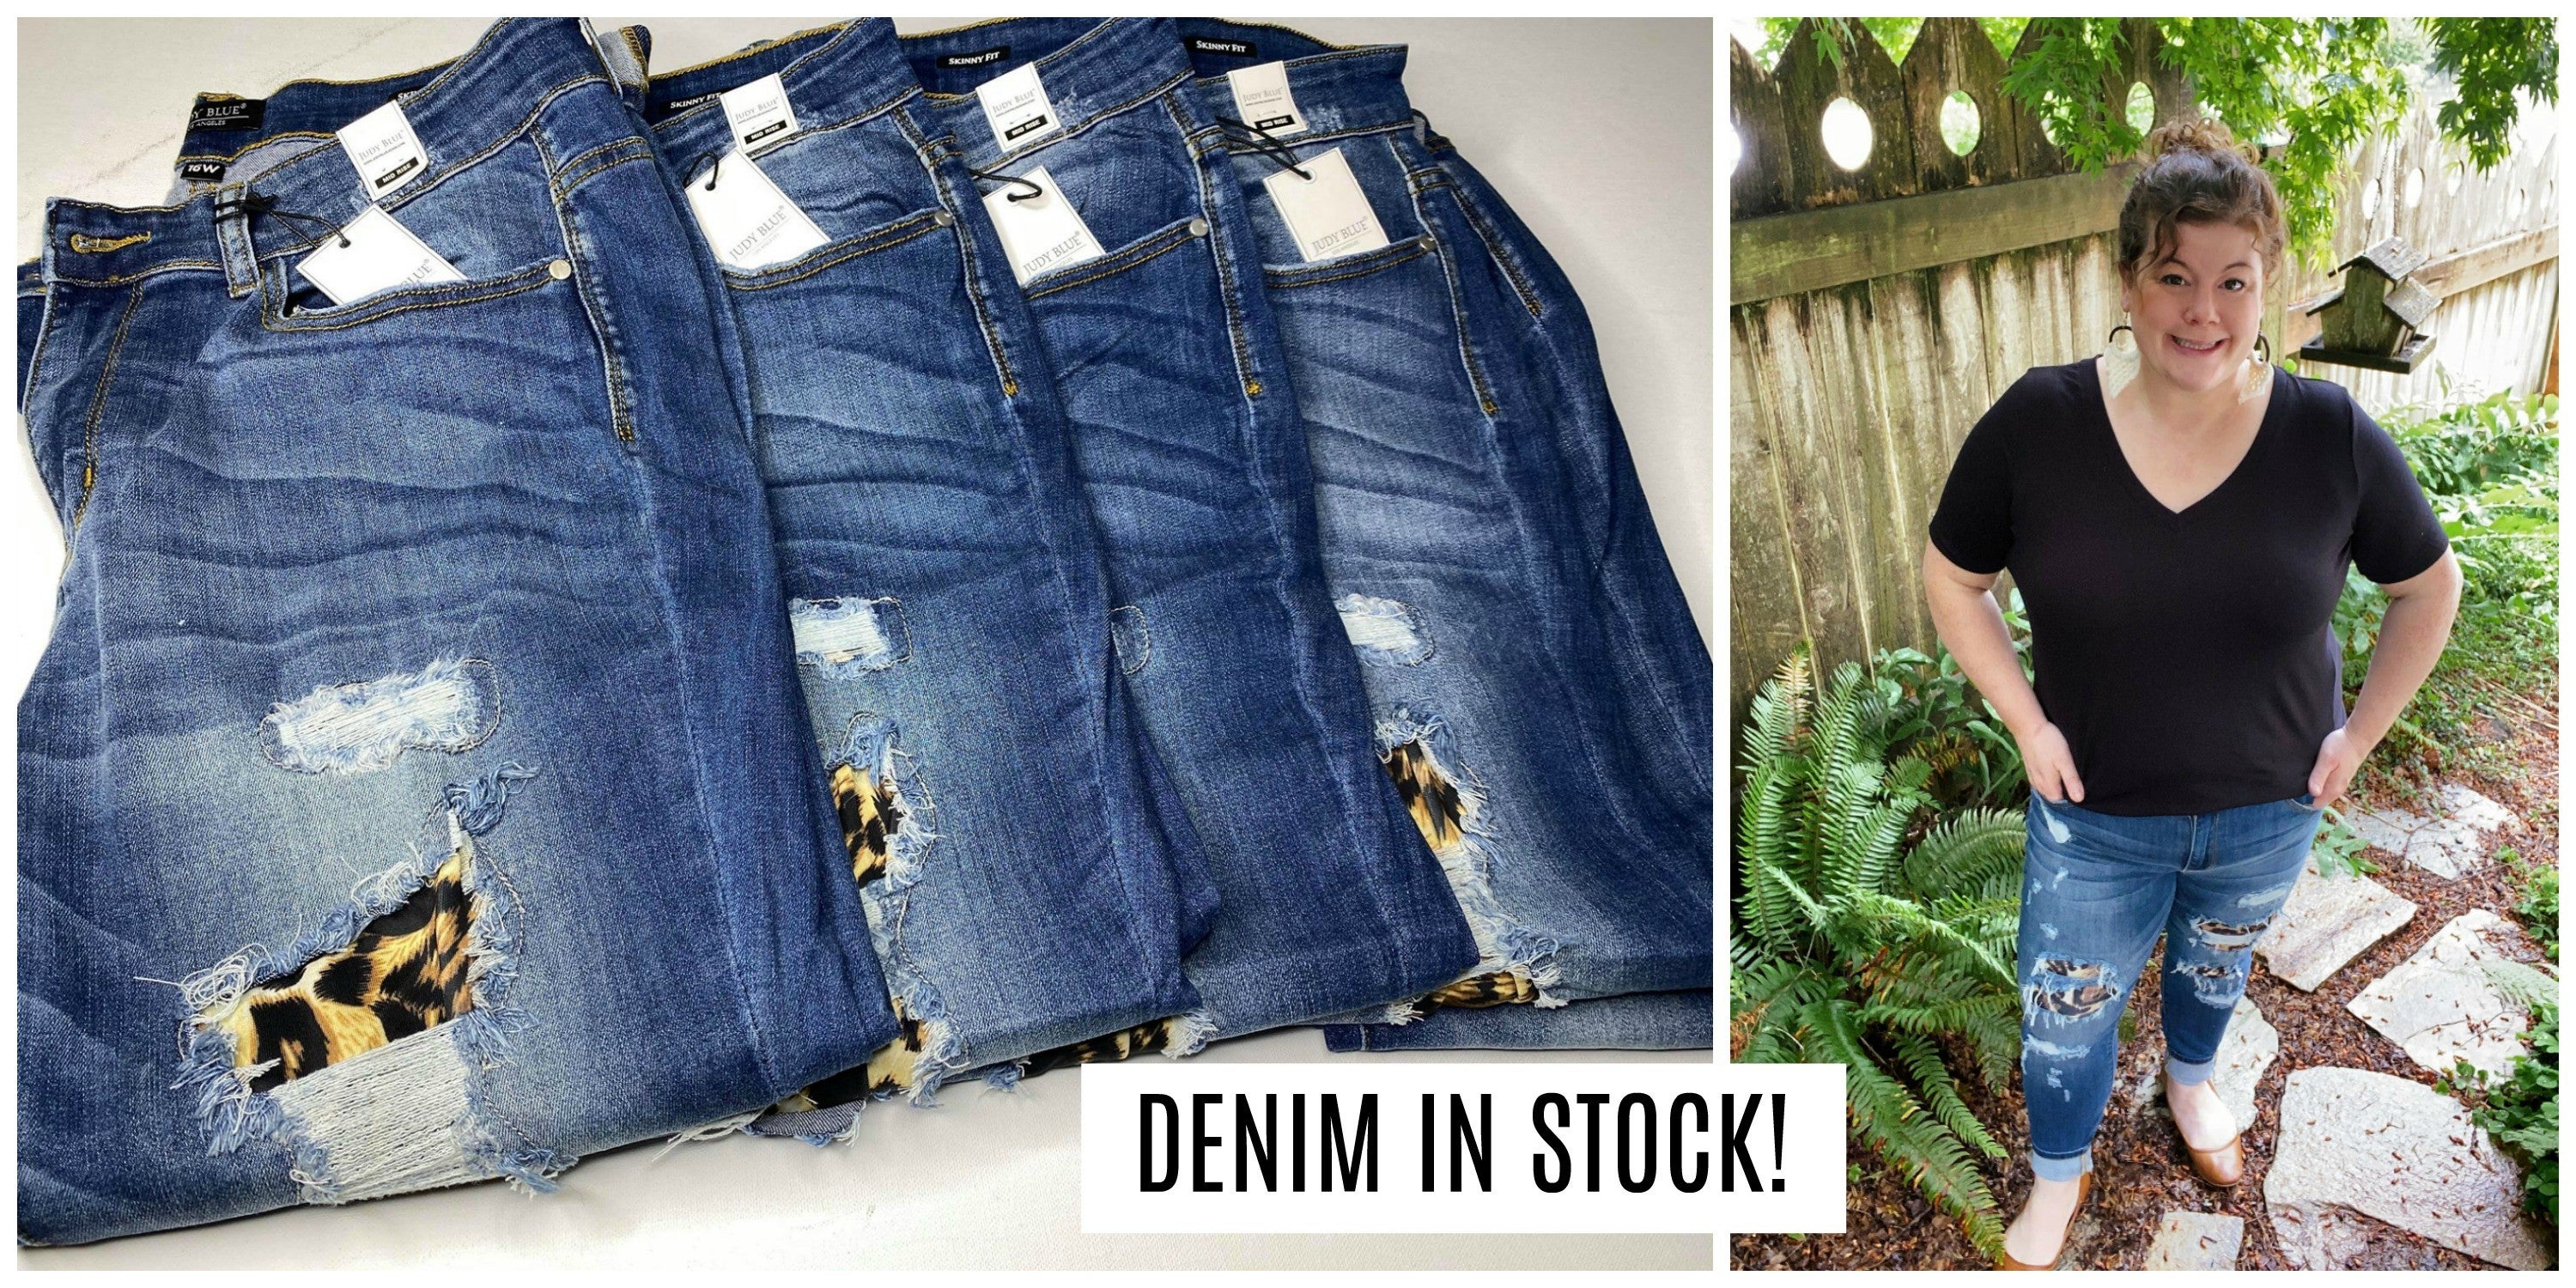 Denim in stock